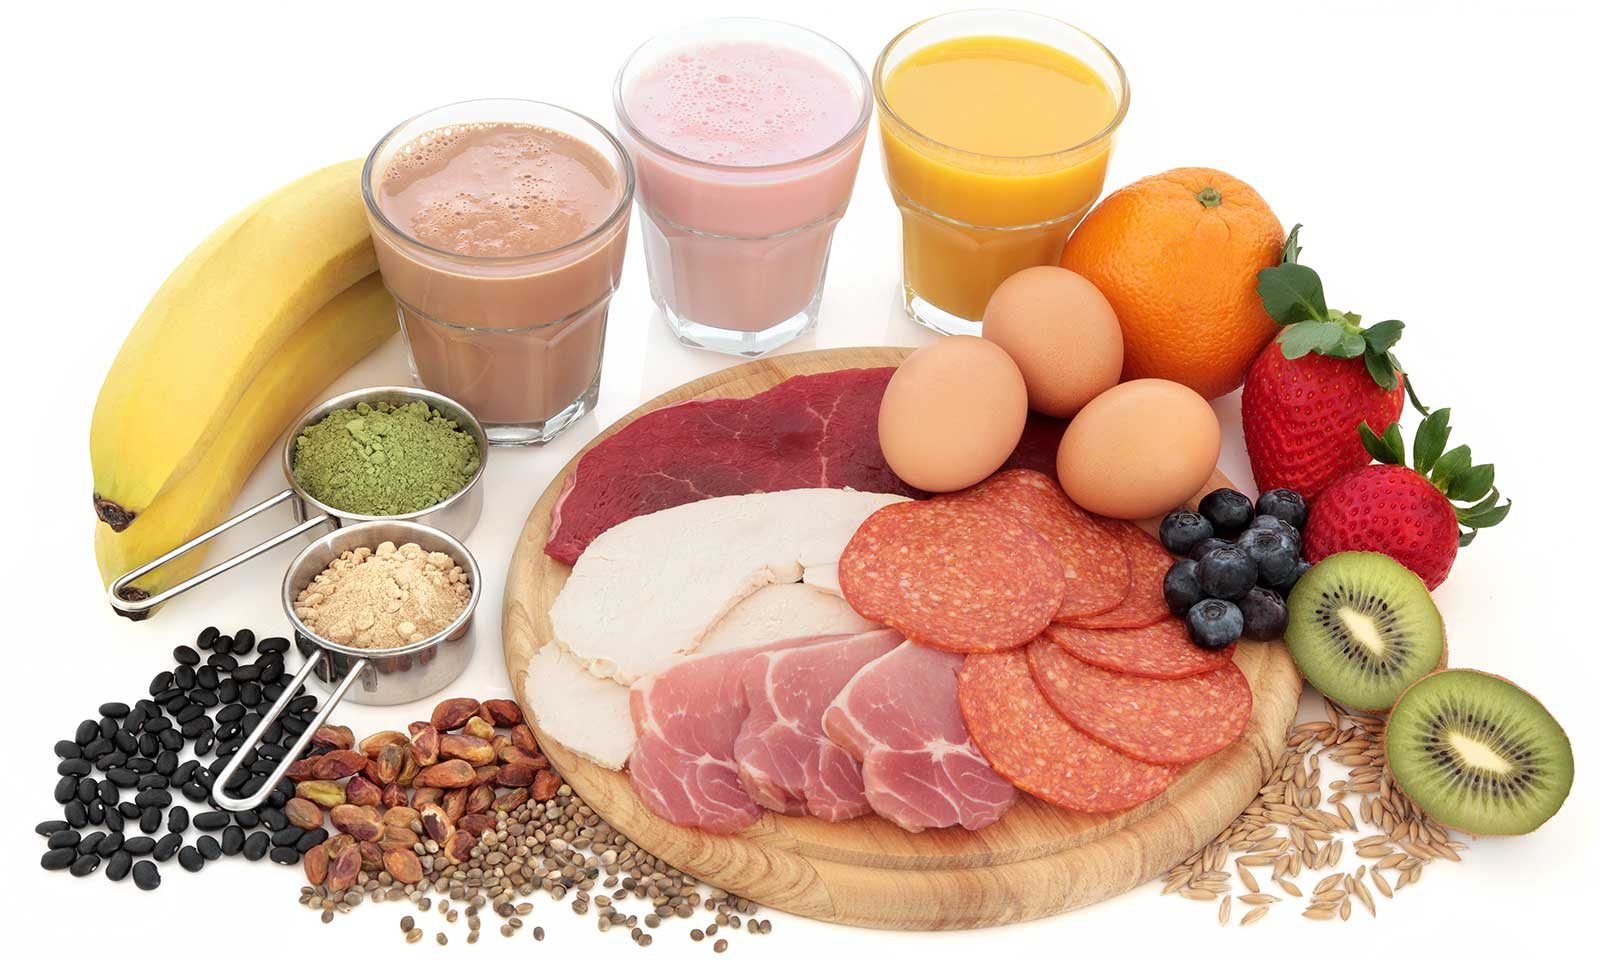 Should You Have Protein Before Bed?